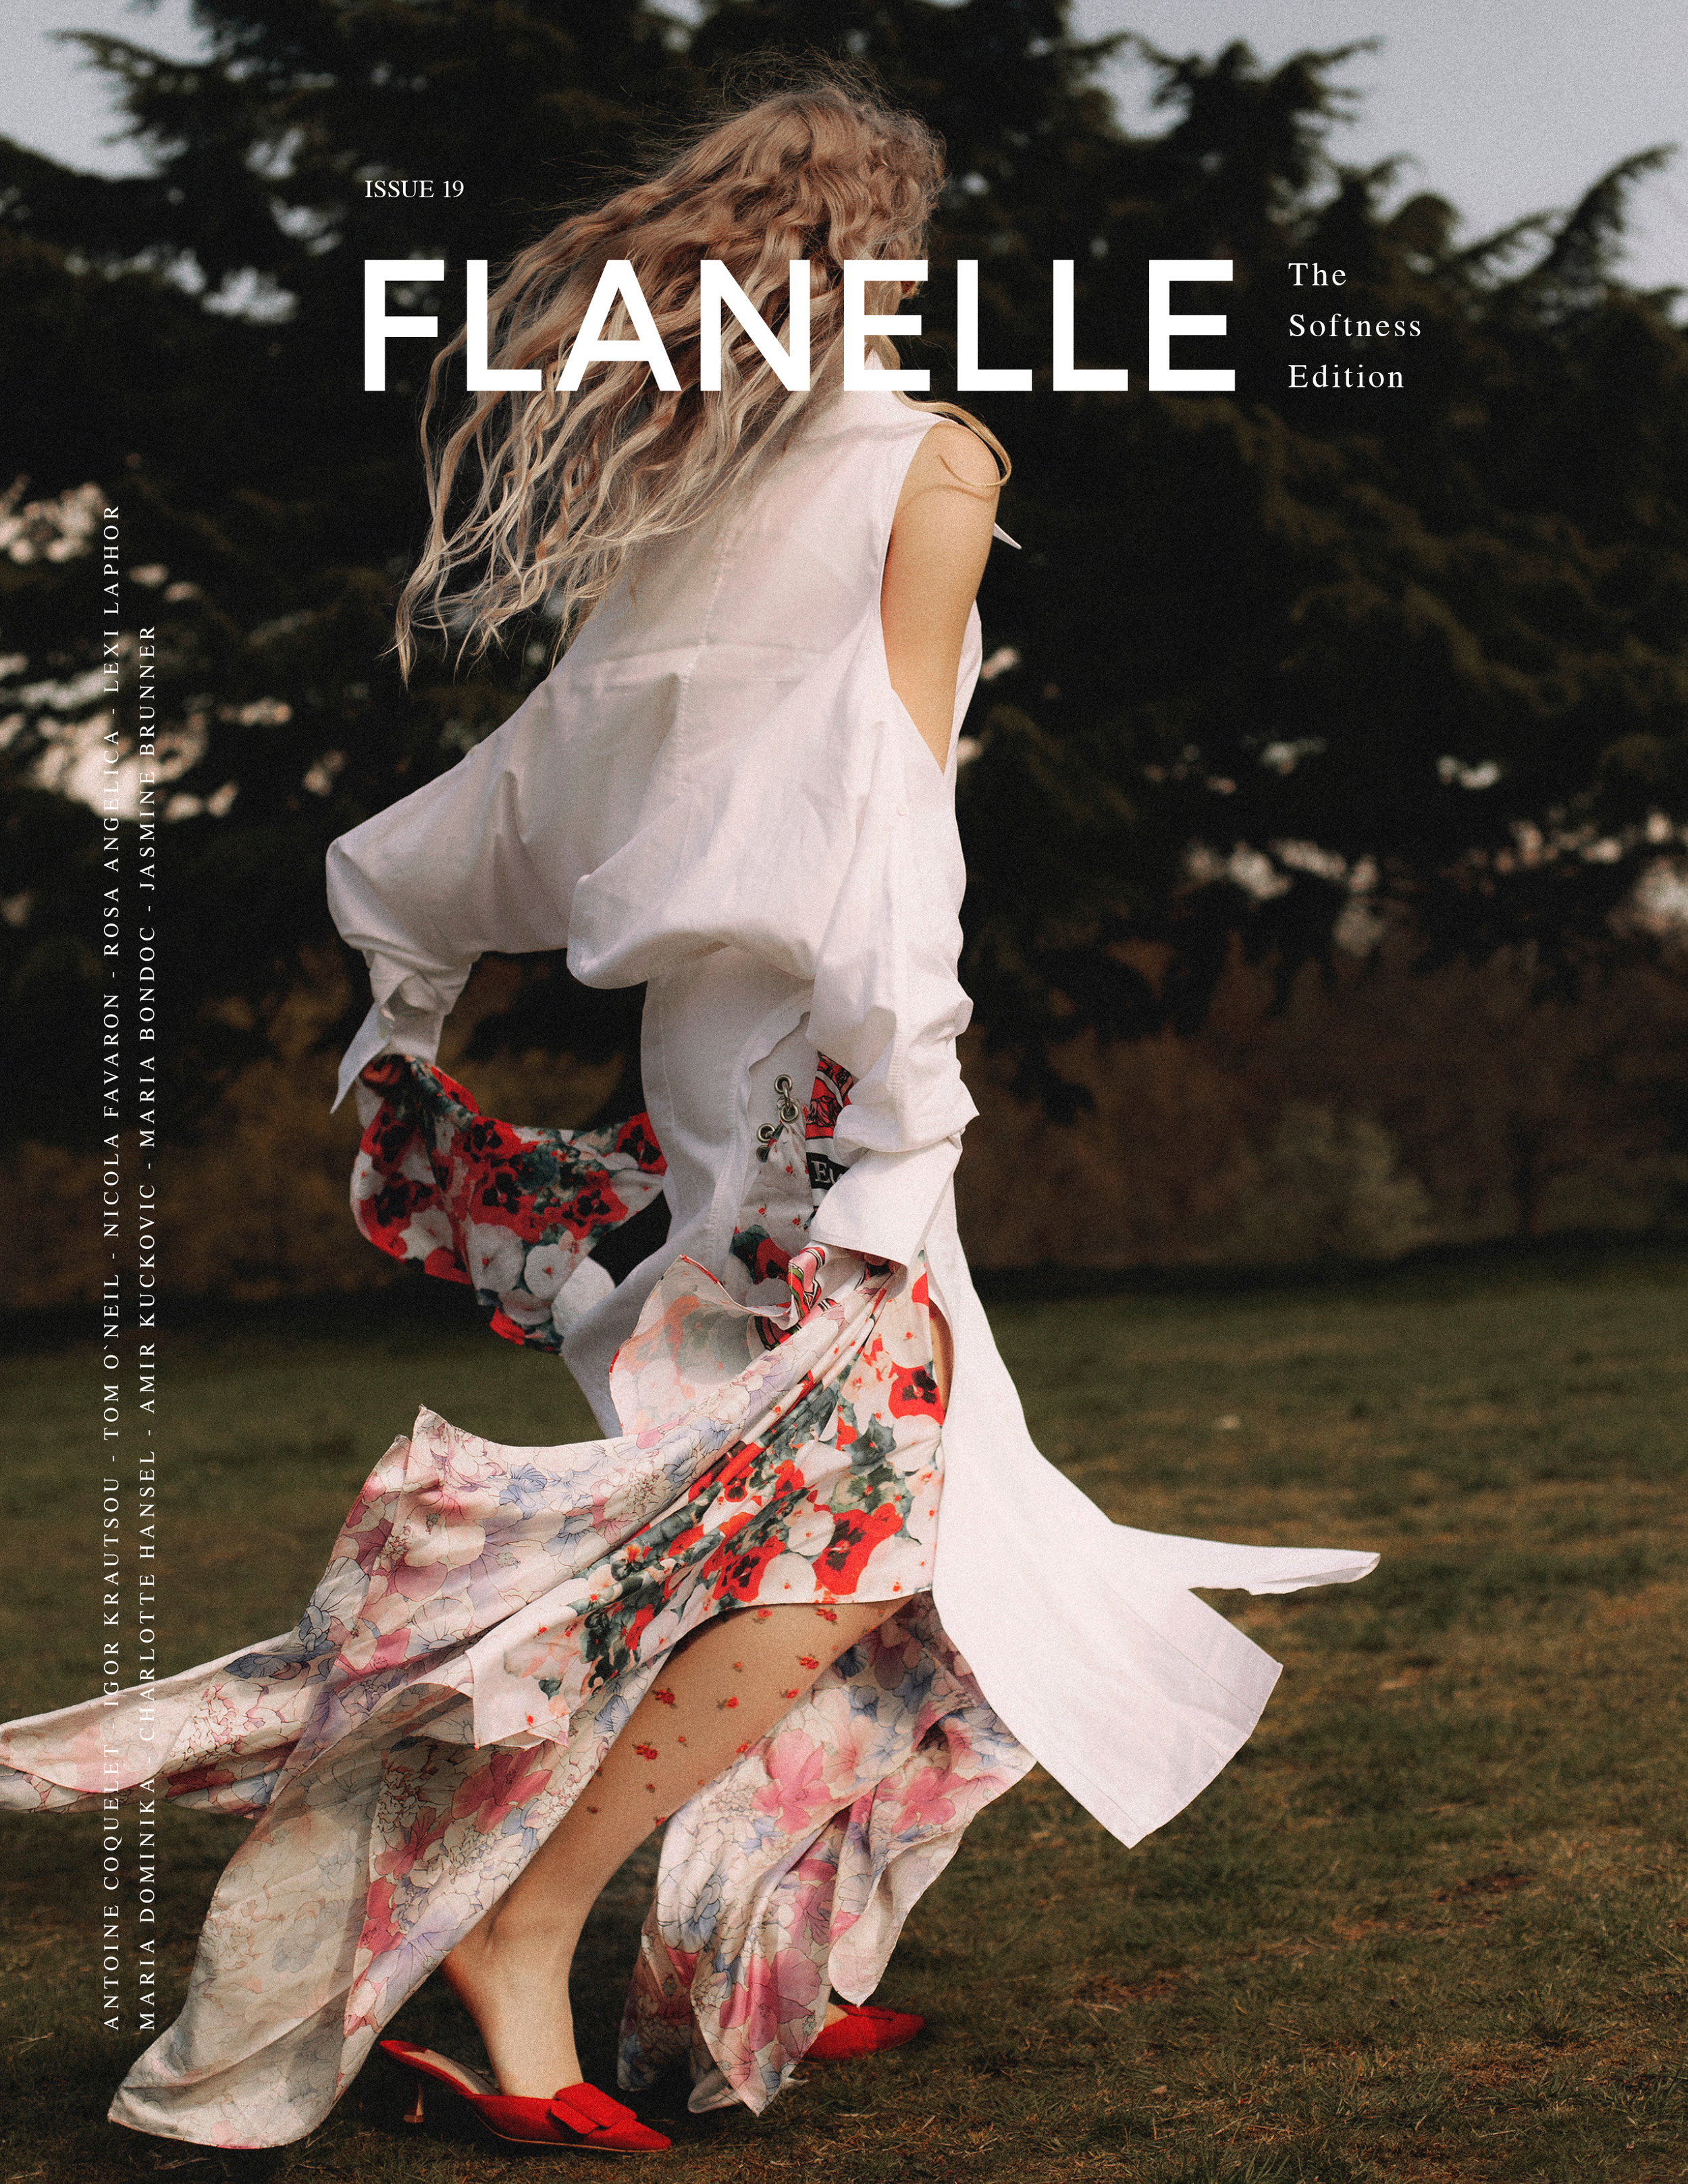 Flanelle Magazine      Issue #19